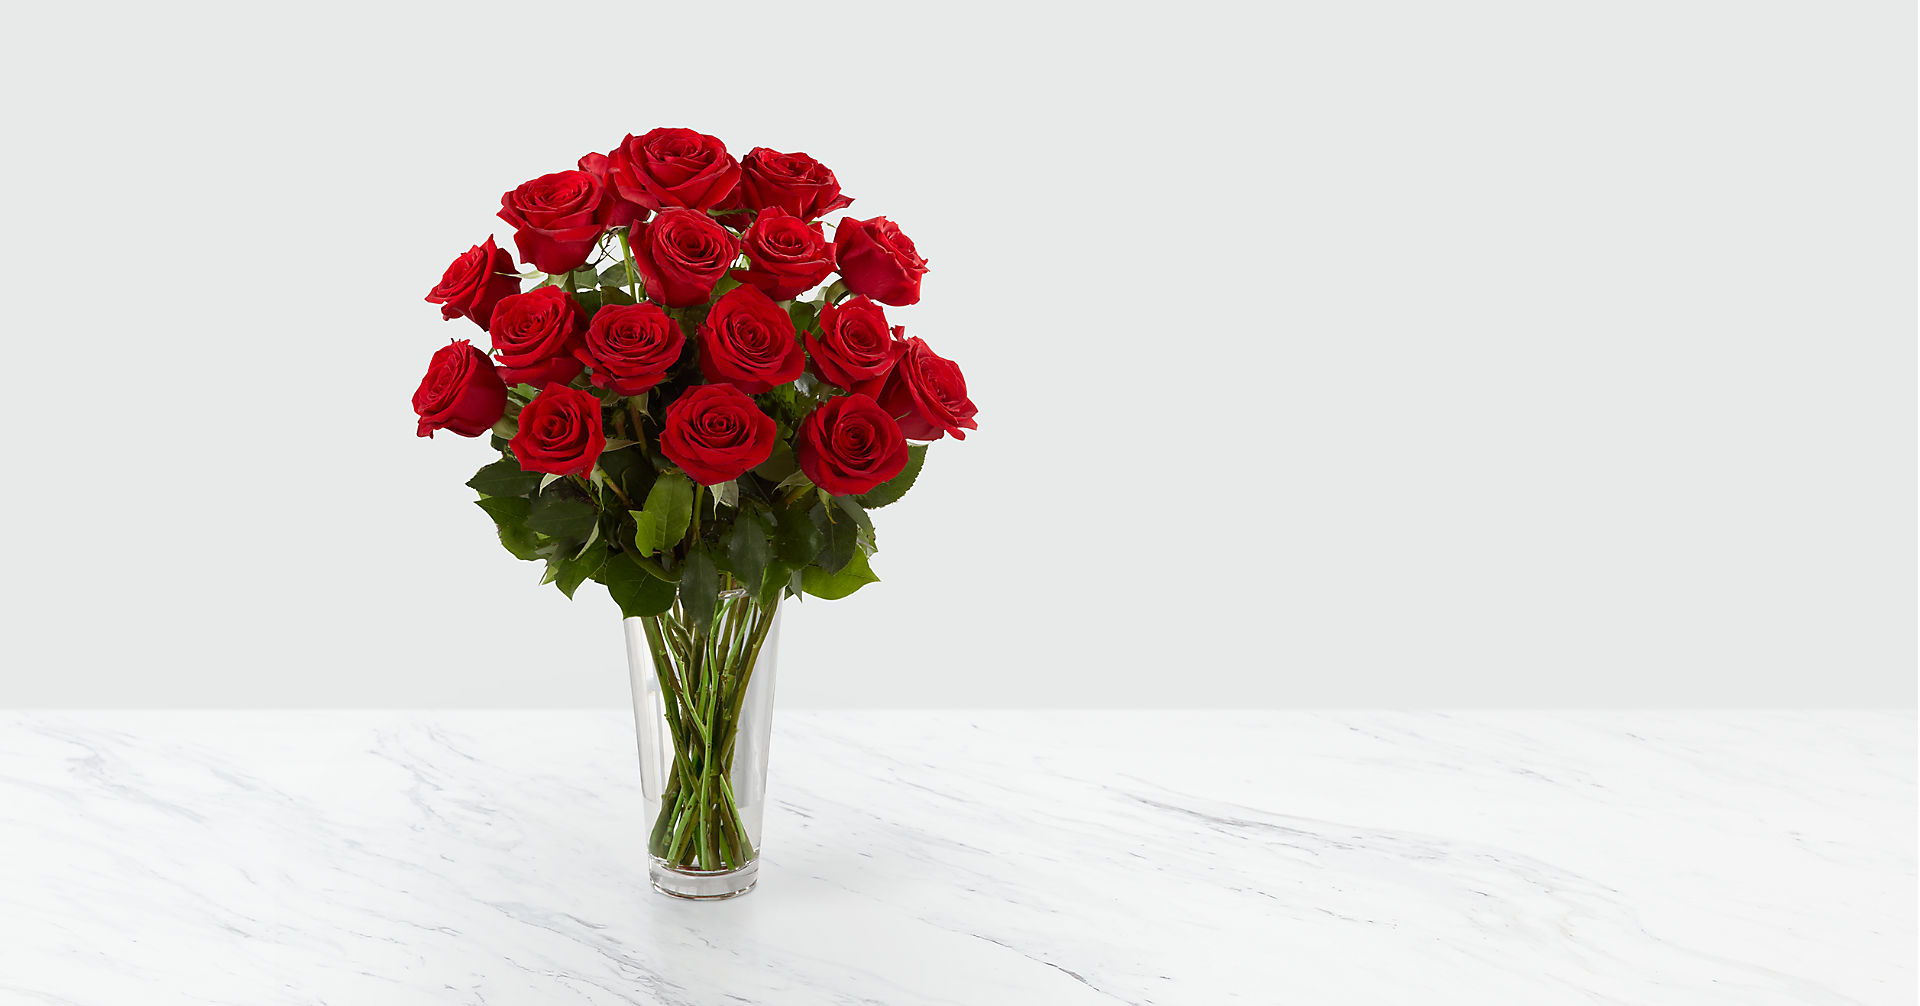 The Long Stem Red Rose Bouquet - Image 1 Of 3